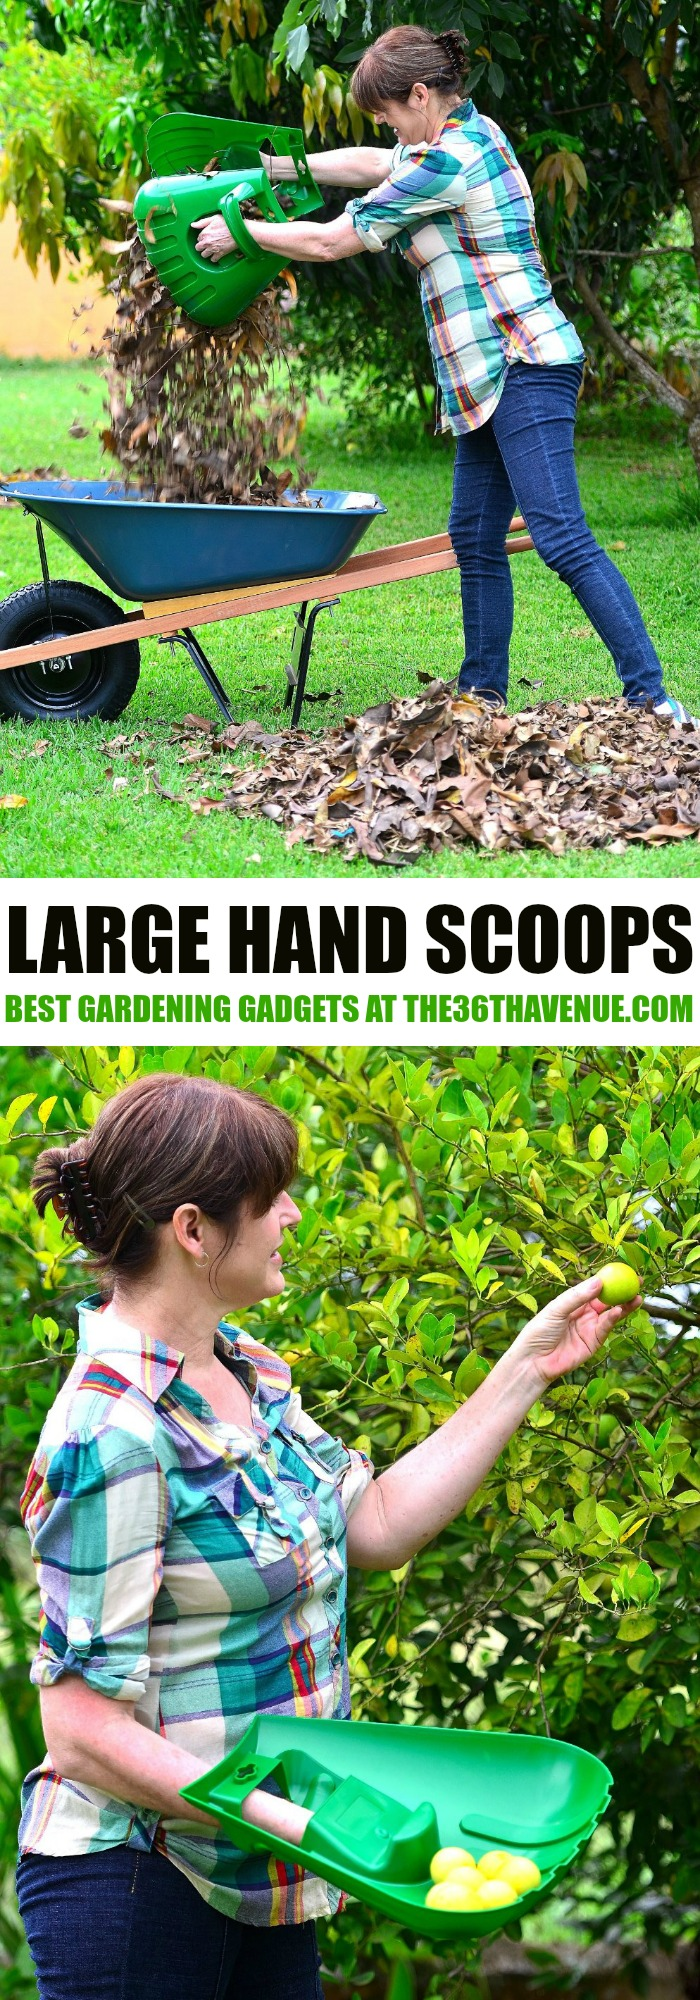 Gardening Gadgets 10 the36thavenue.com